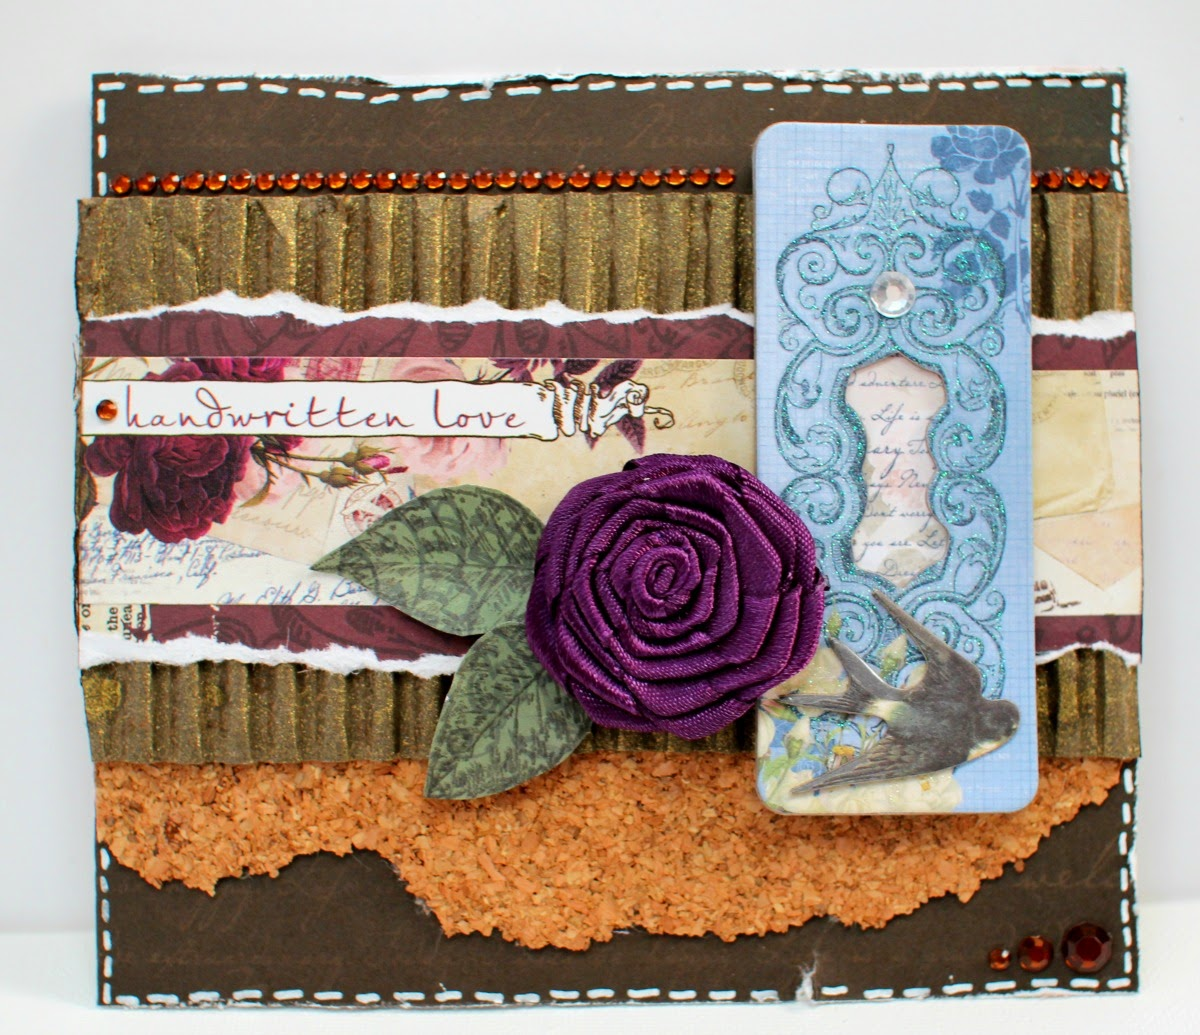 Handwritten Love Card by Ilene Tell using BoBunny Rose Cafe Collection